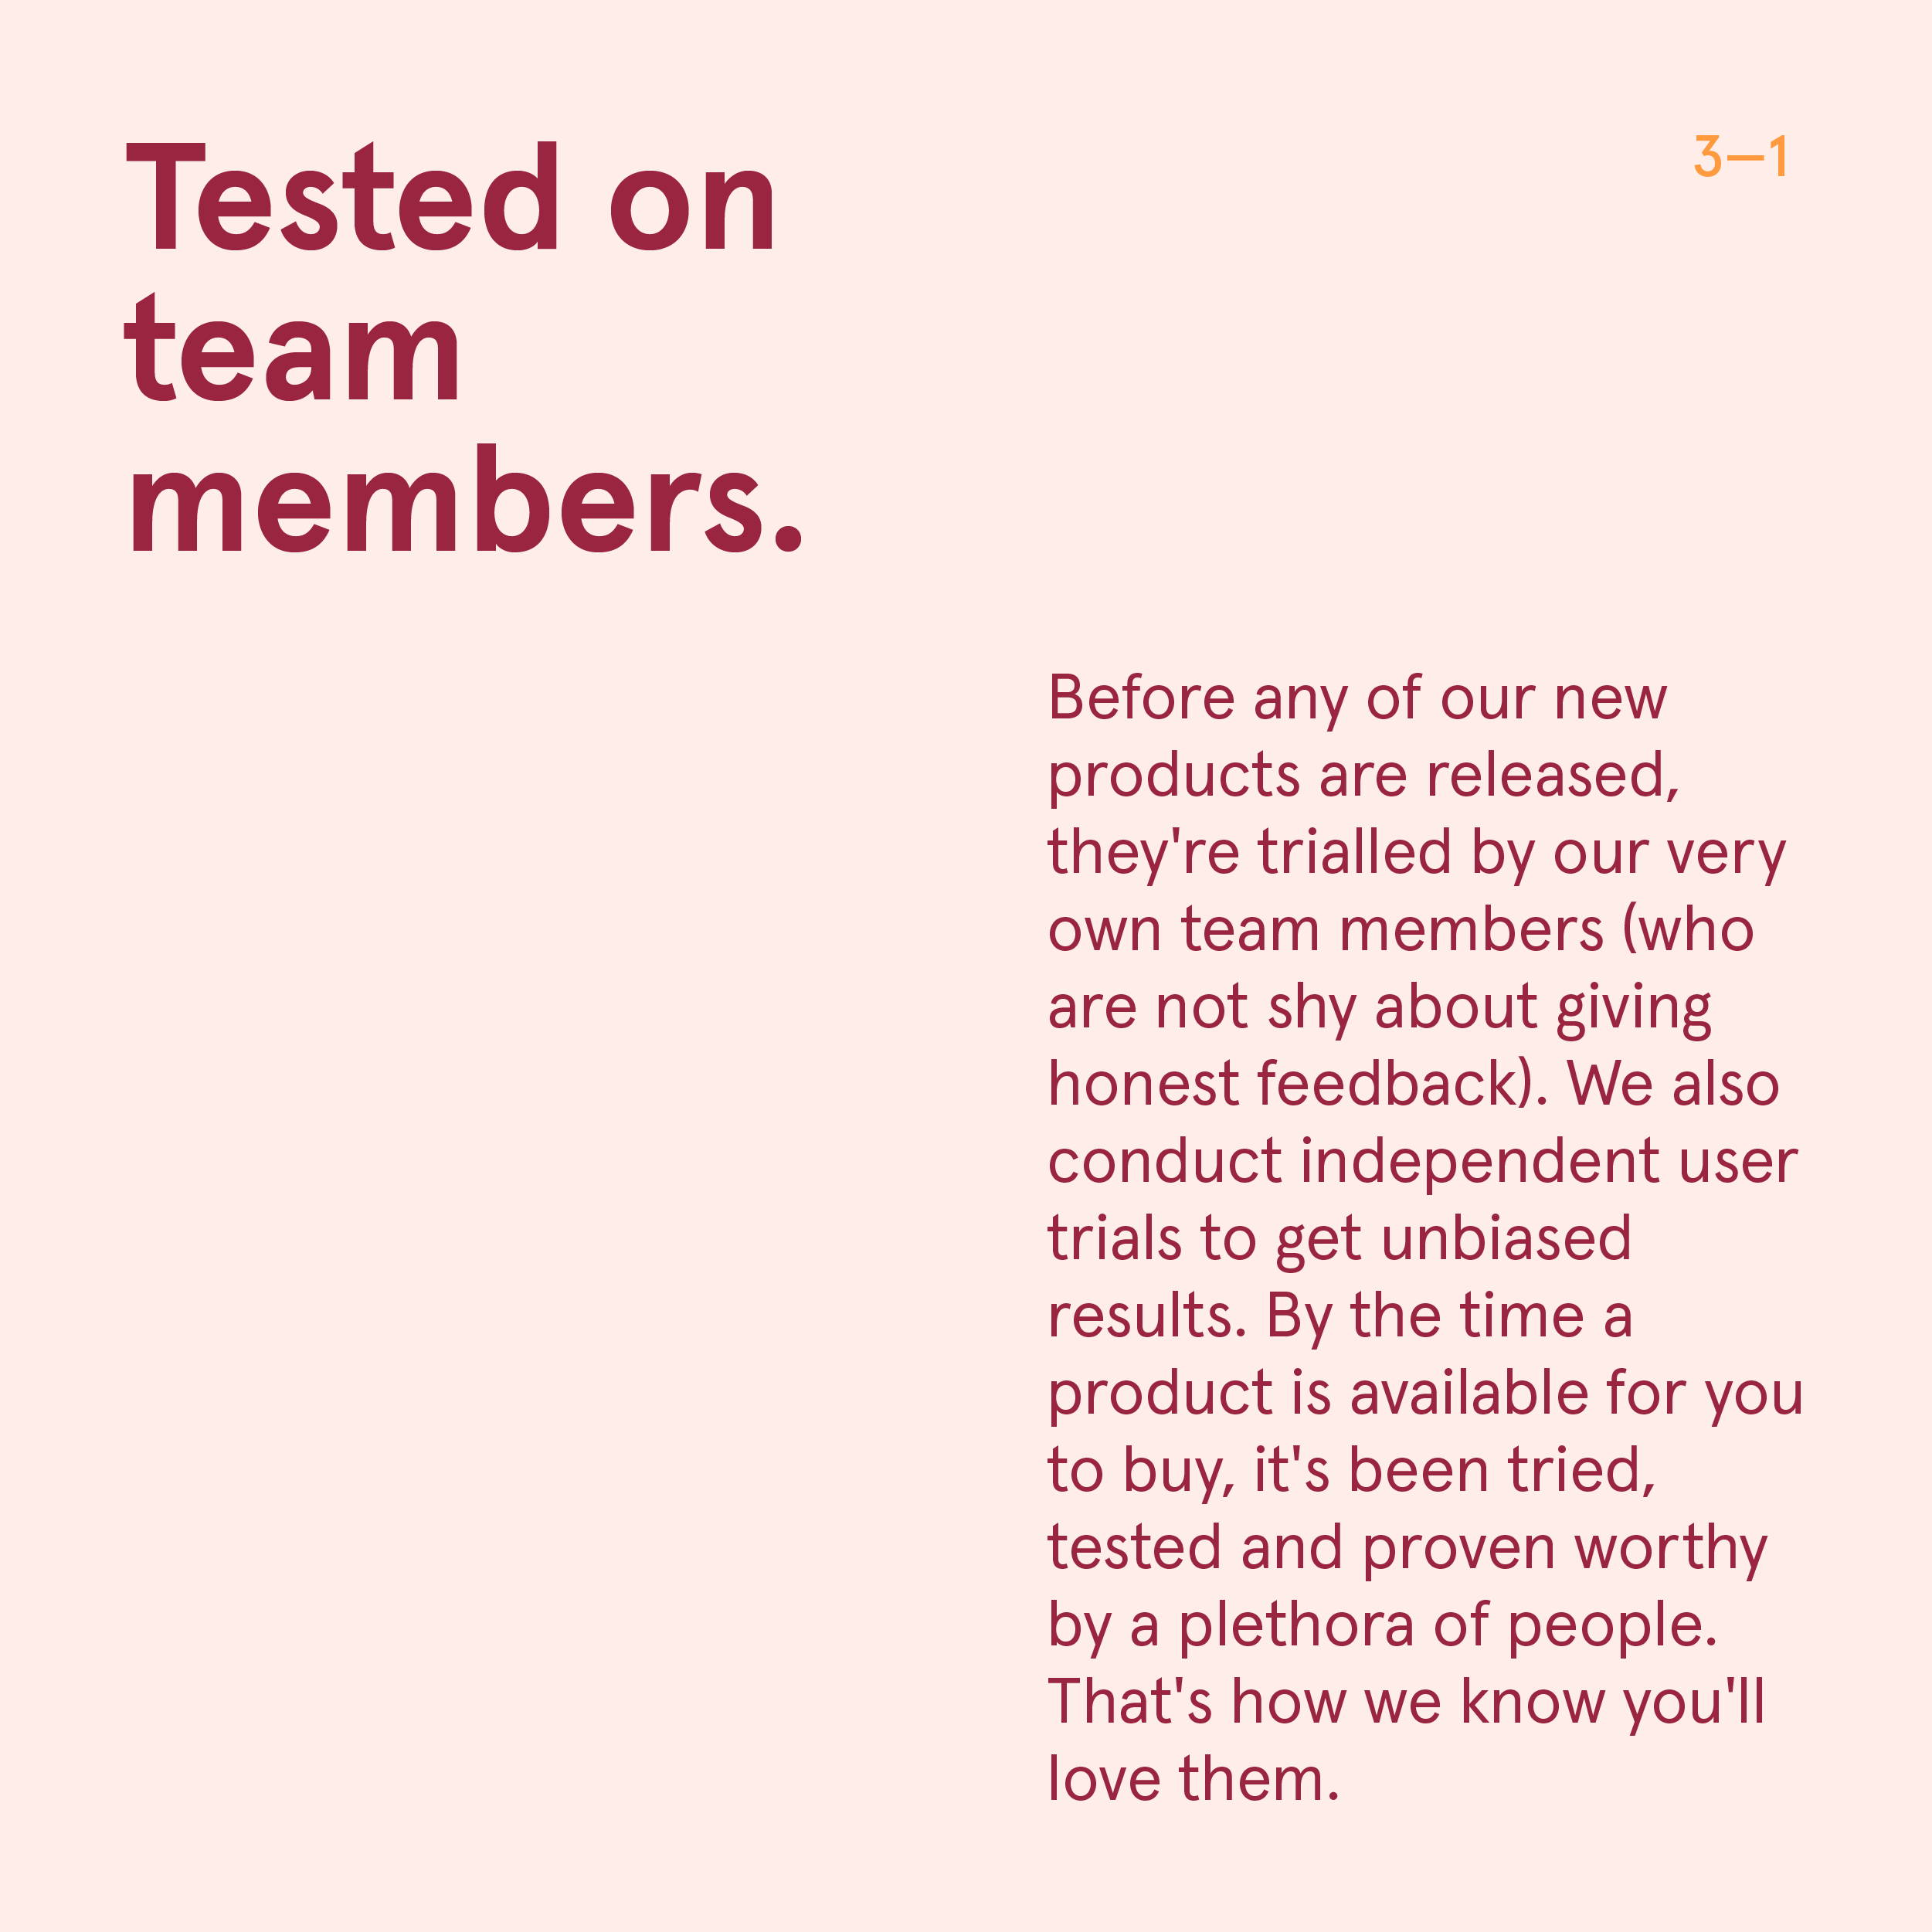 Sub-heading: Tested on Team Members.   Copy:  Before any of our new products are released, they're trialled by our very own team members (who are not shy about giving honest feedback). We also conduct independent user trials to get unbiased results. By the time a product is available for you to buy, it's been tried, tested and proven worthy by a plethora of people. That's how we know you'll love them.